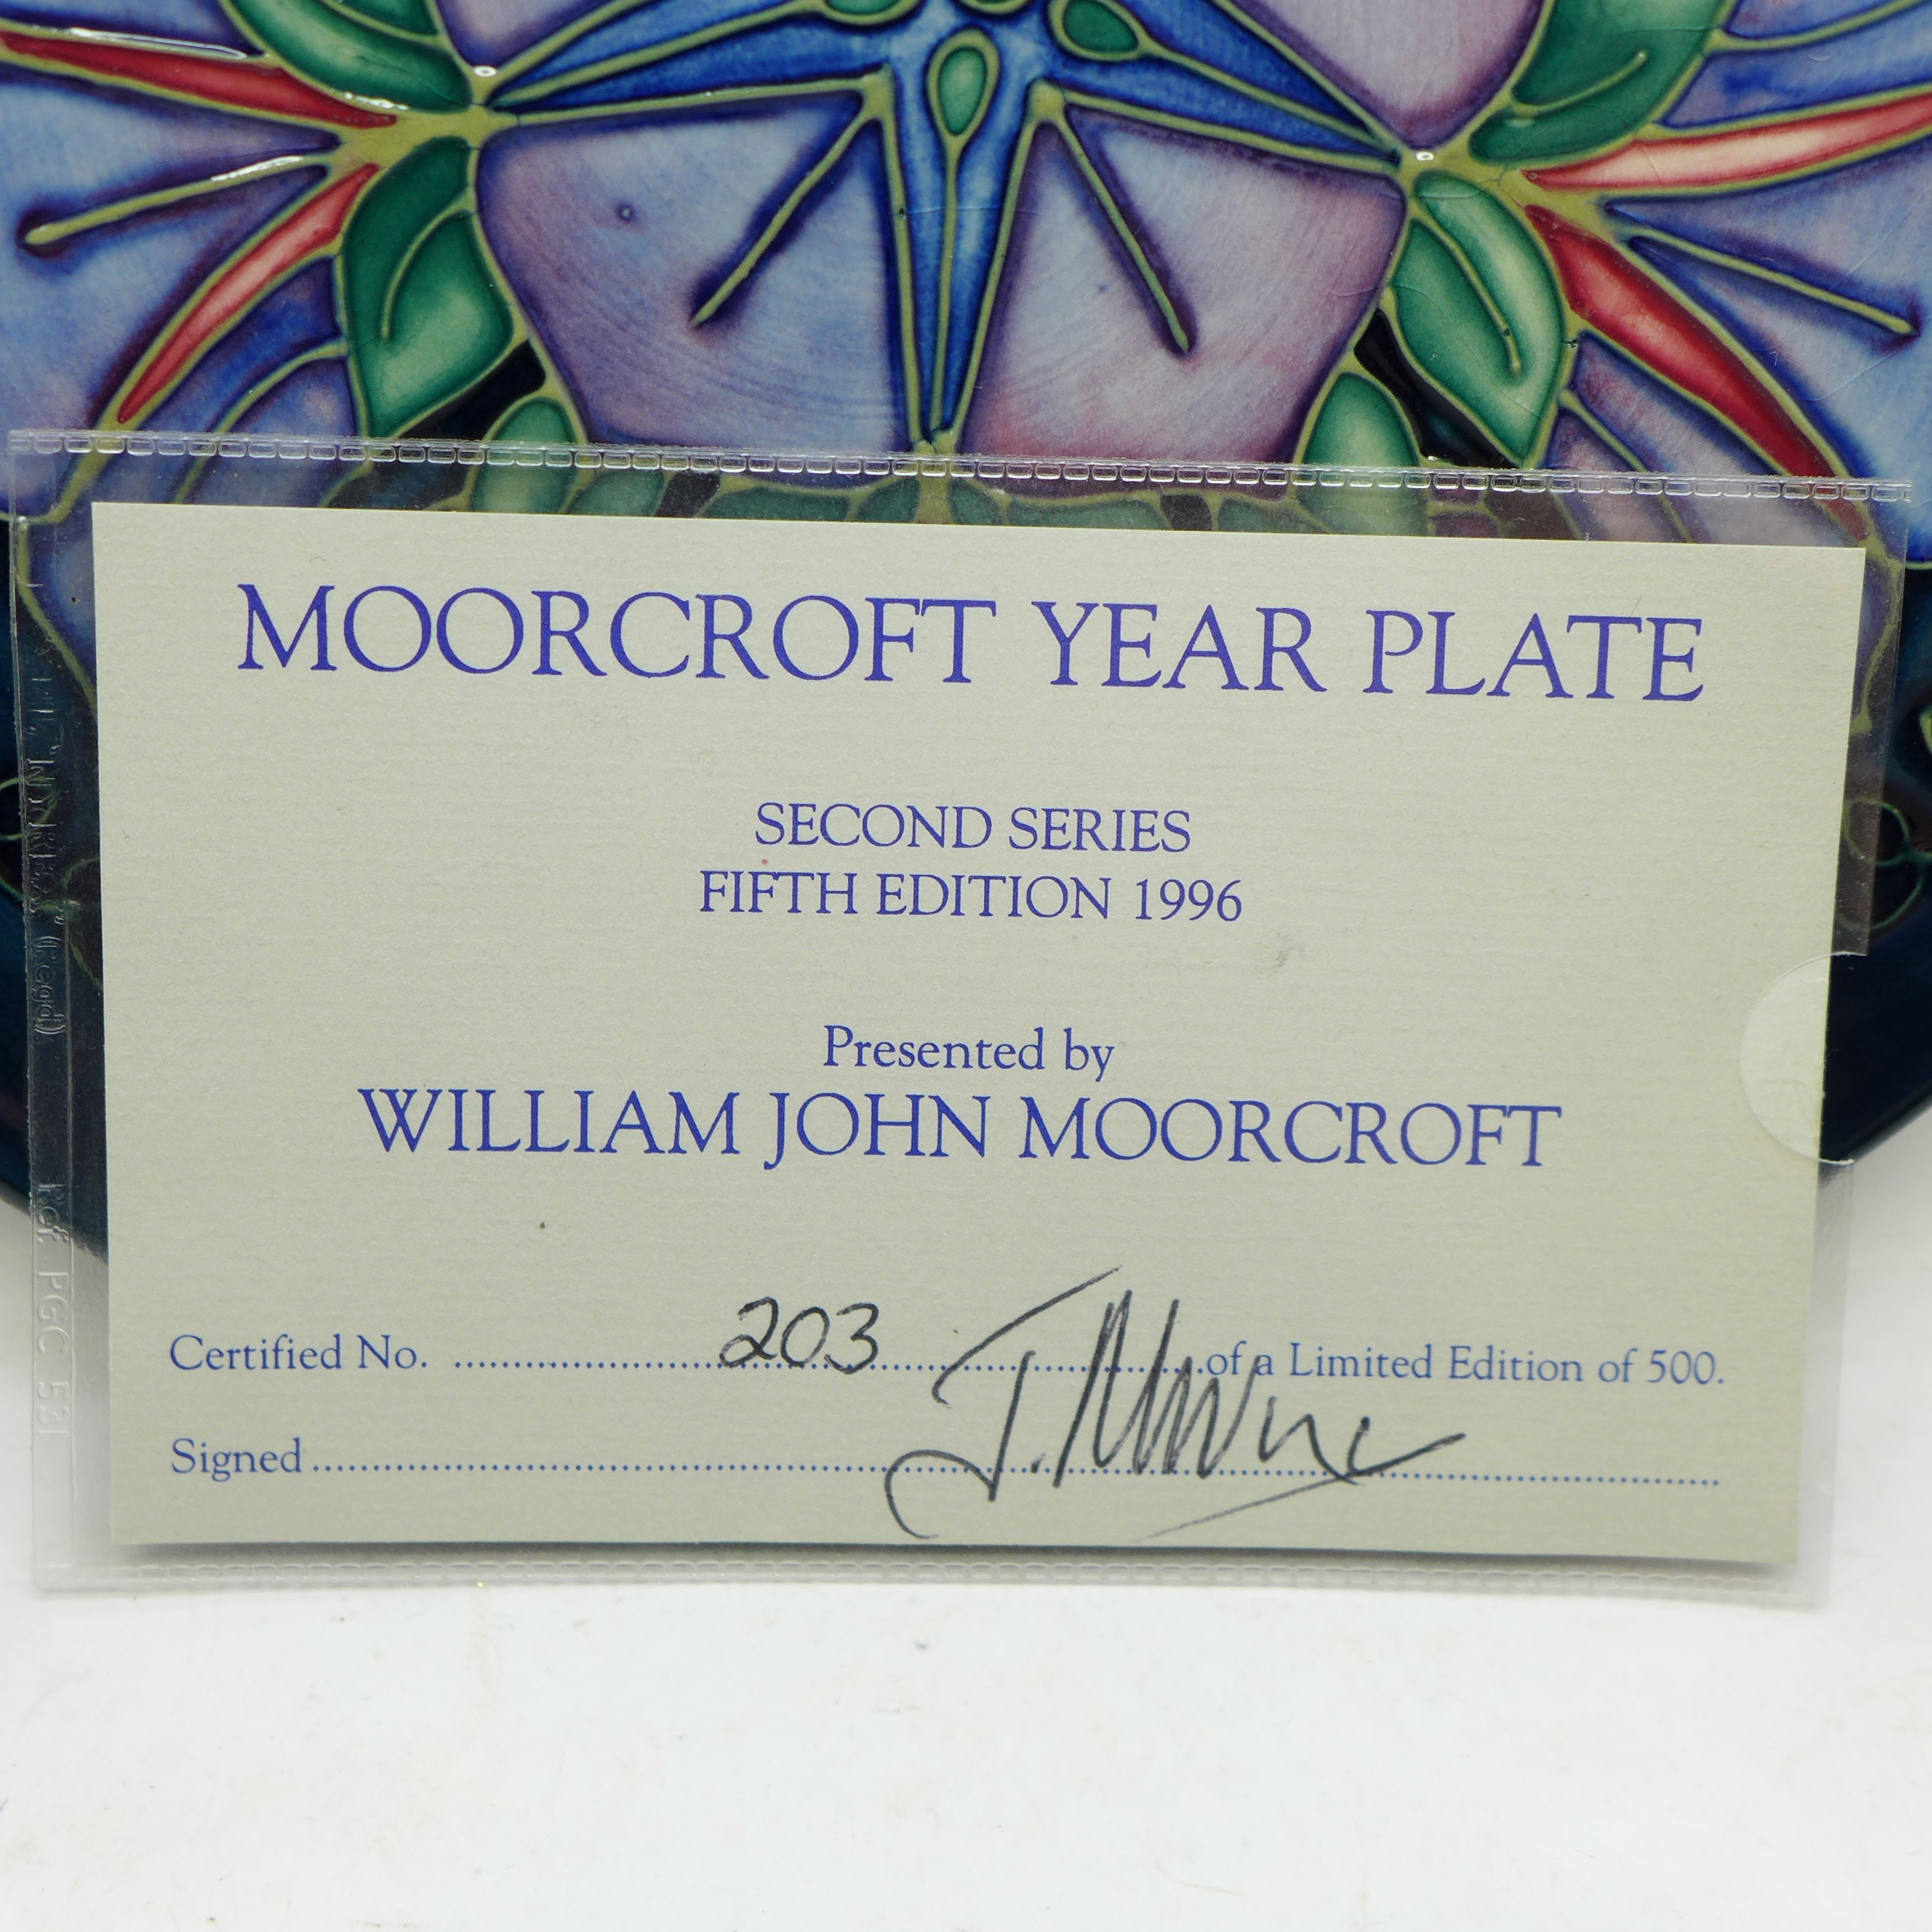 A Moorcroft Year Plate, Second Series Fifth Edition 1996, 203/500, with signed certificate, no - Image 4 of 7